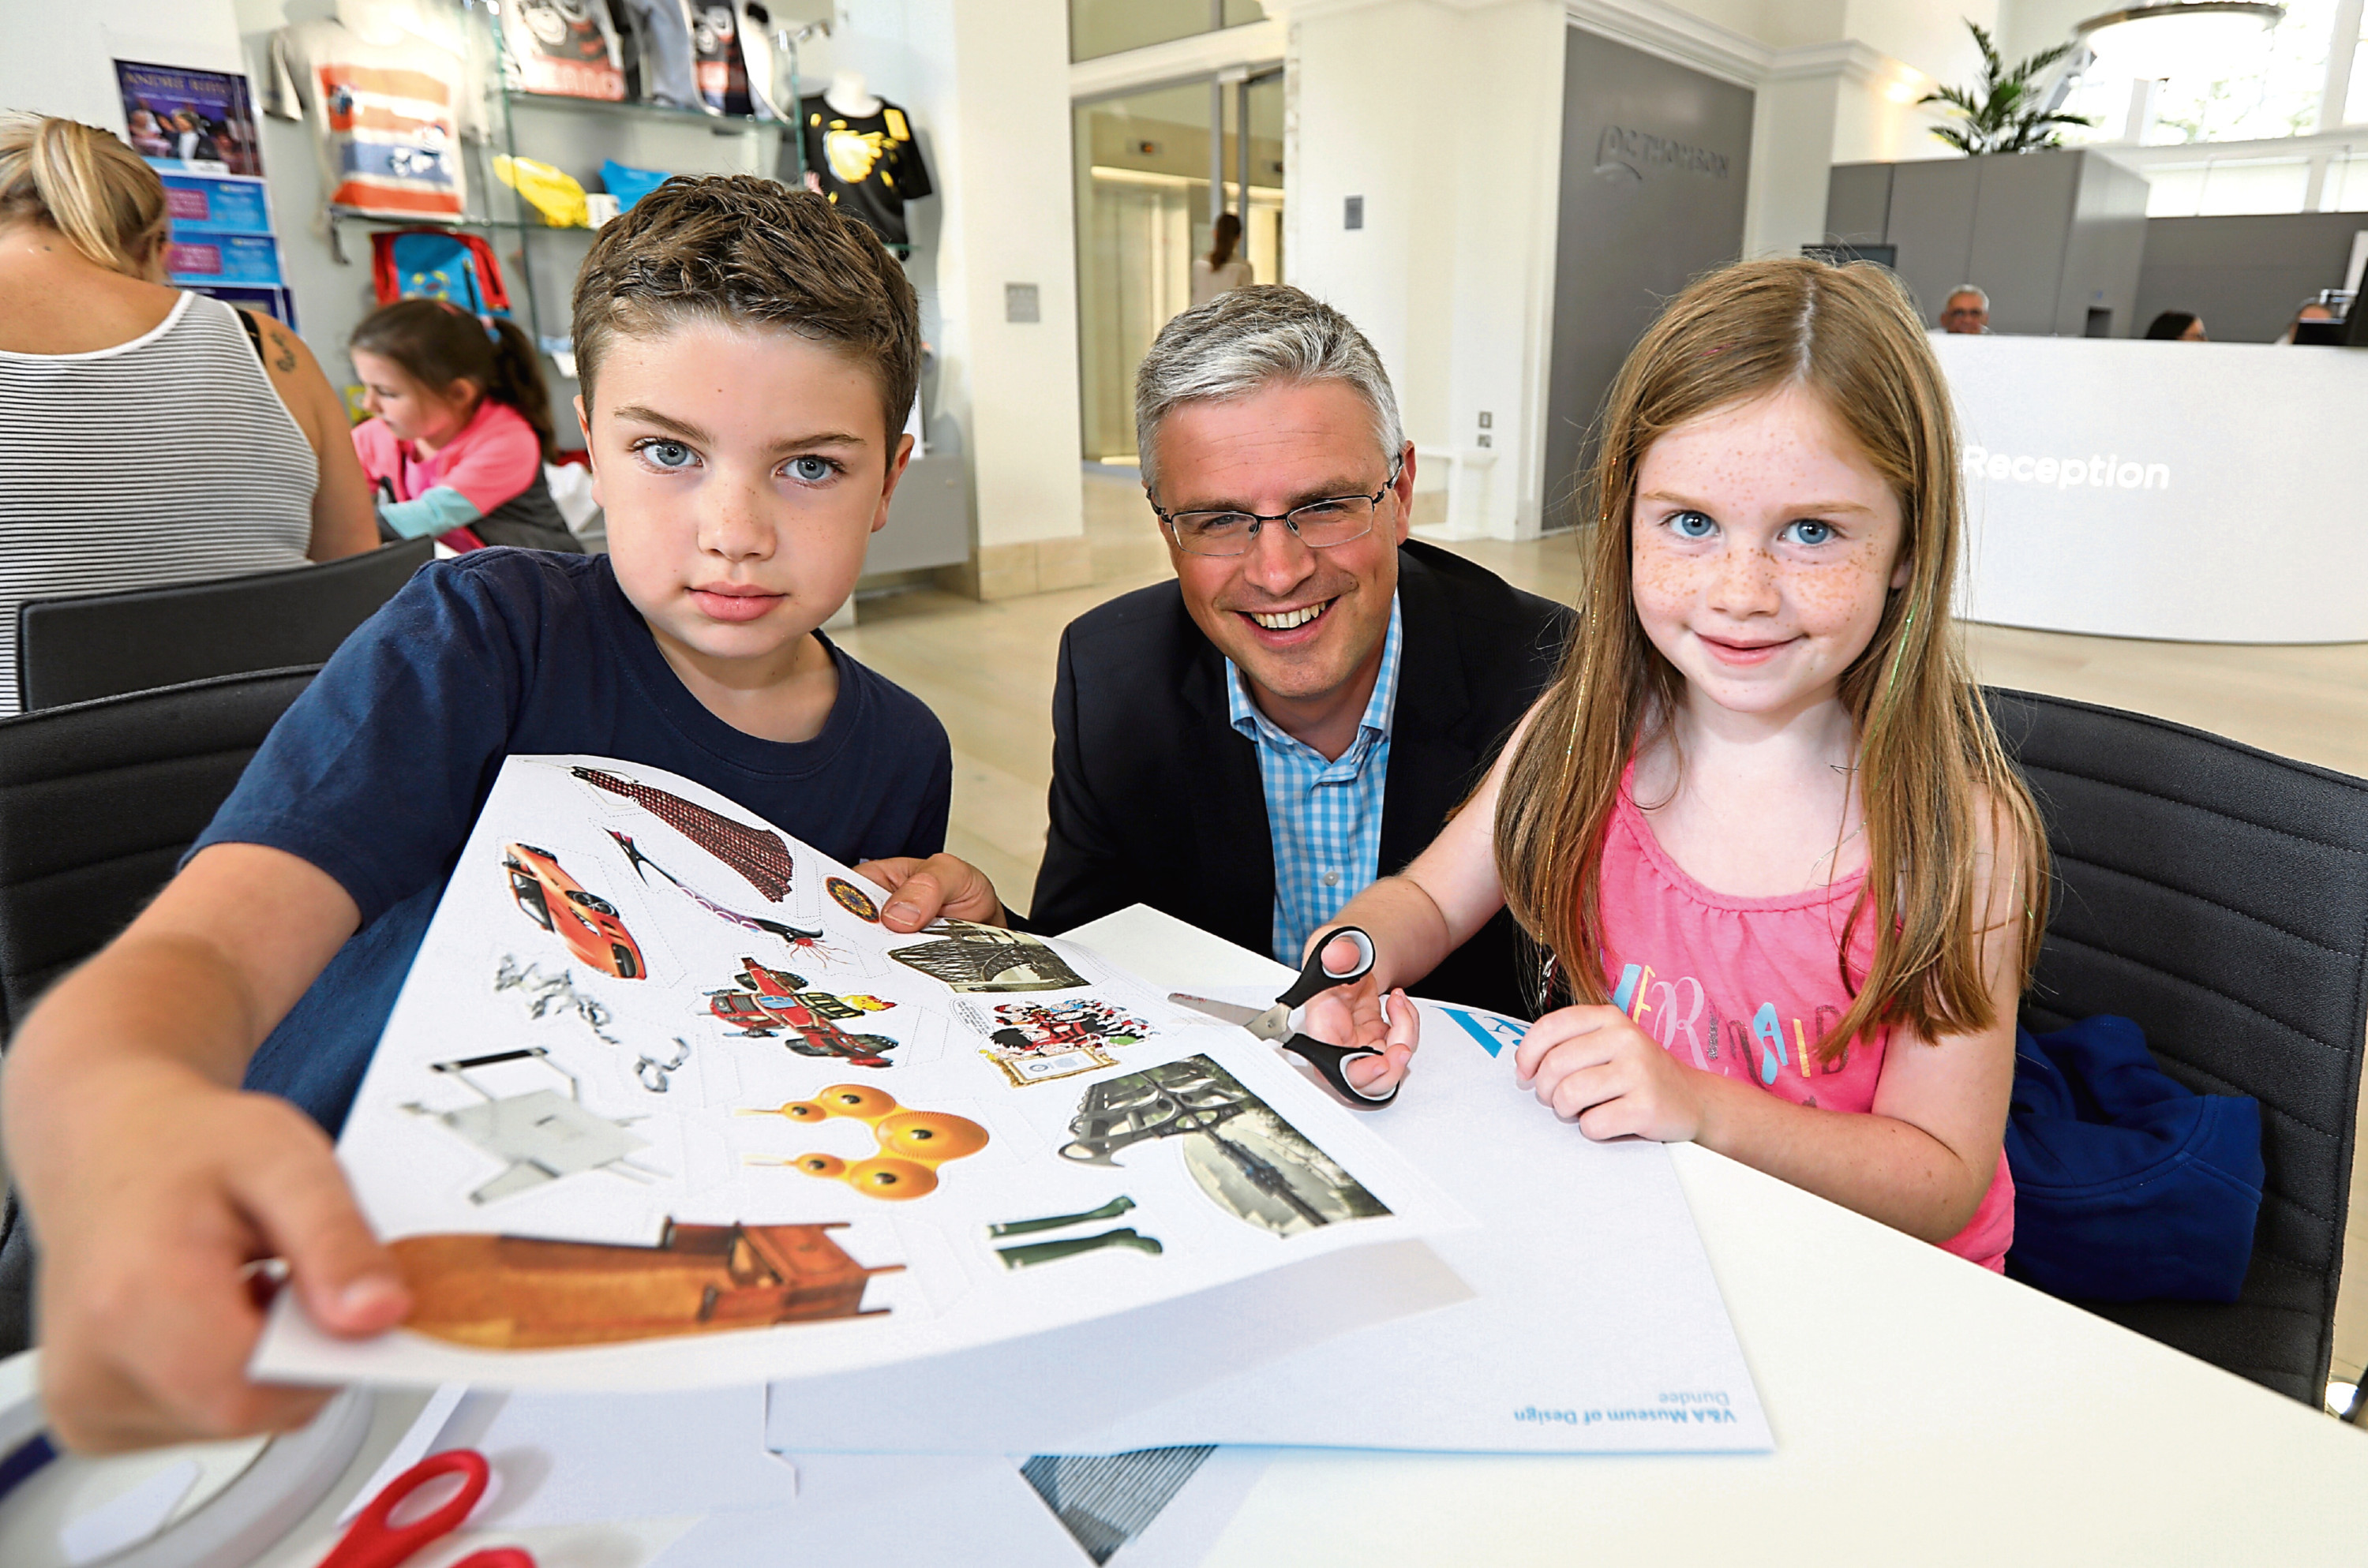 DC Thomson director David Thomson helps nine-year-old Alex and six-year-old Anna Paterson with their pop-up book